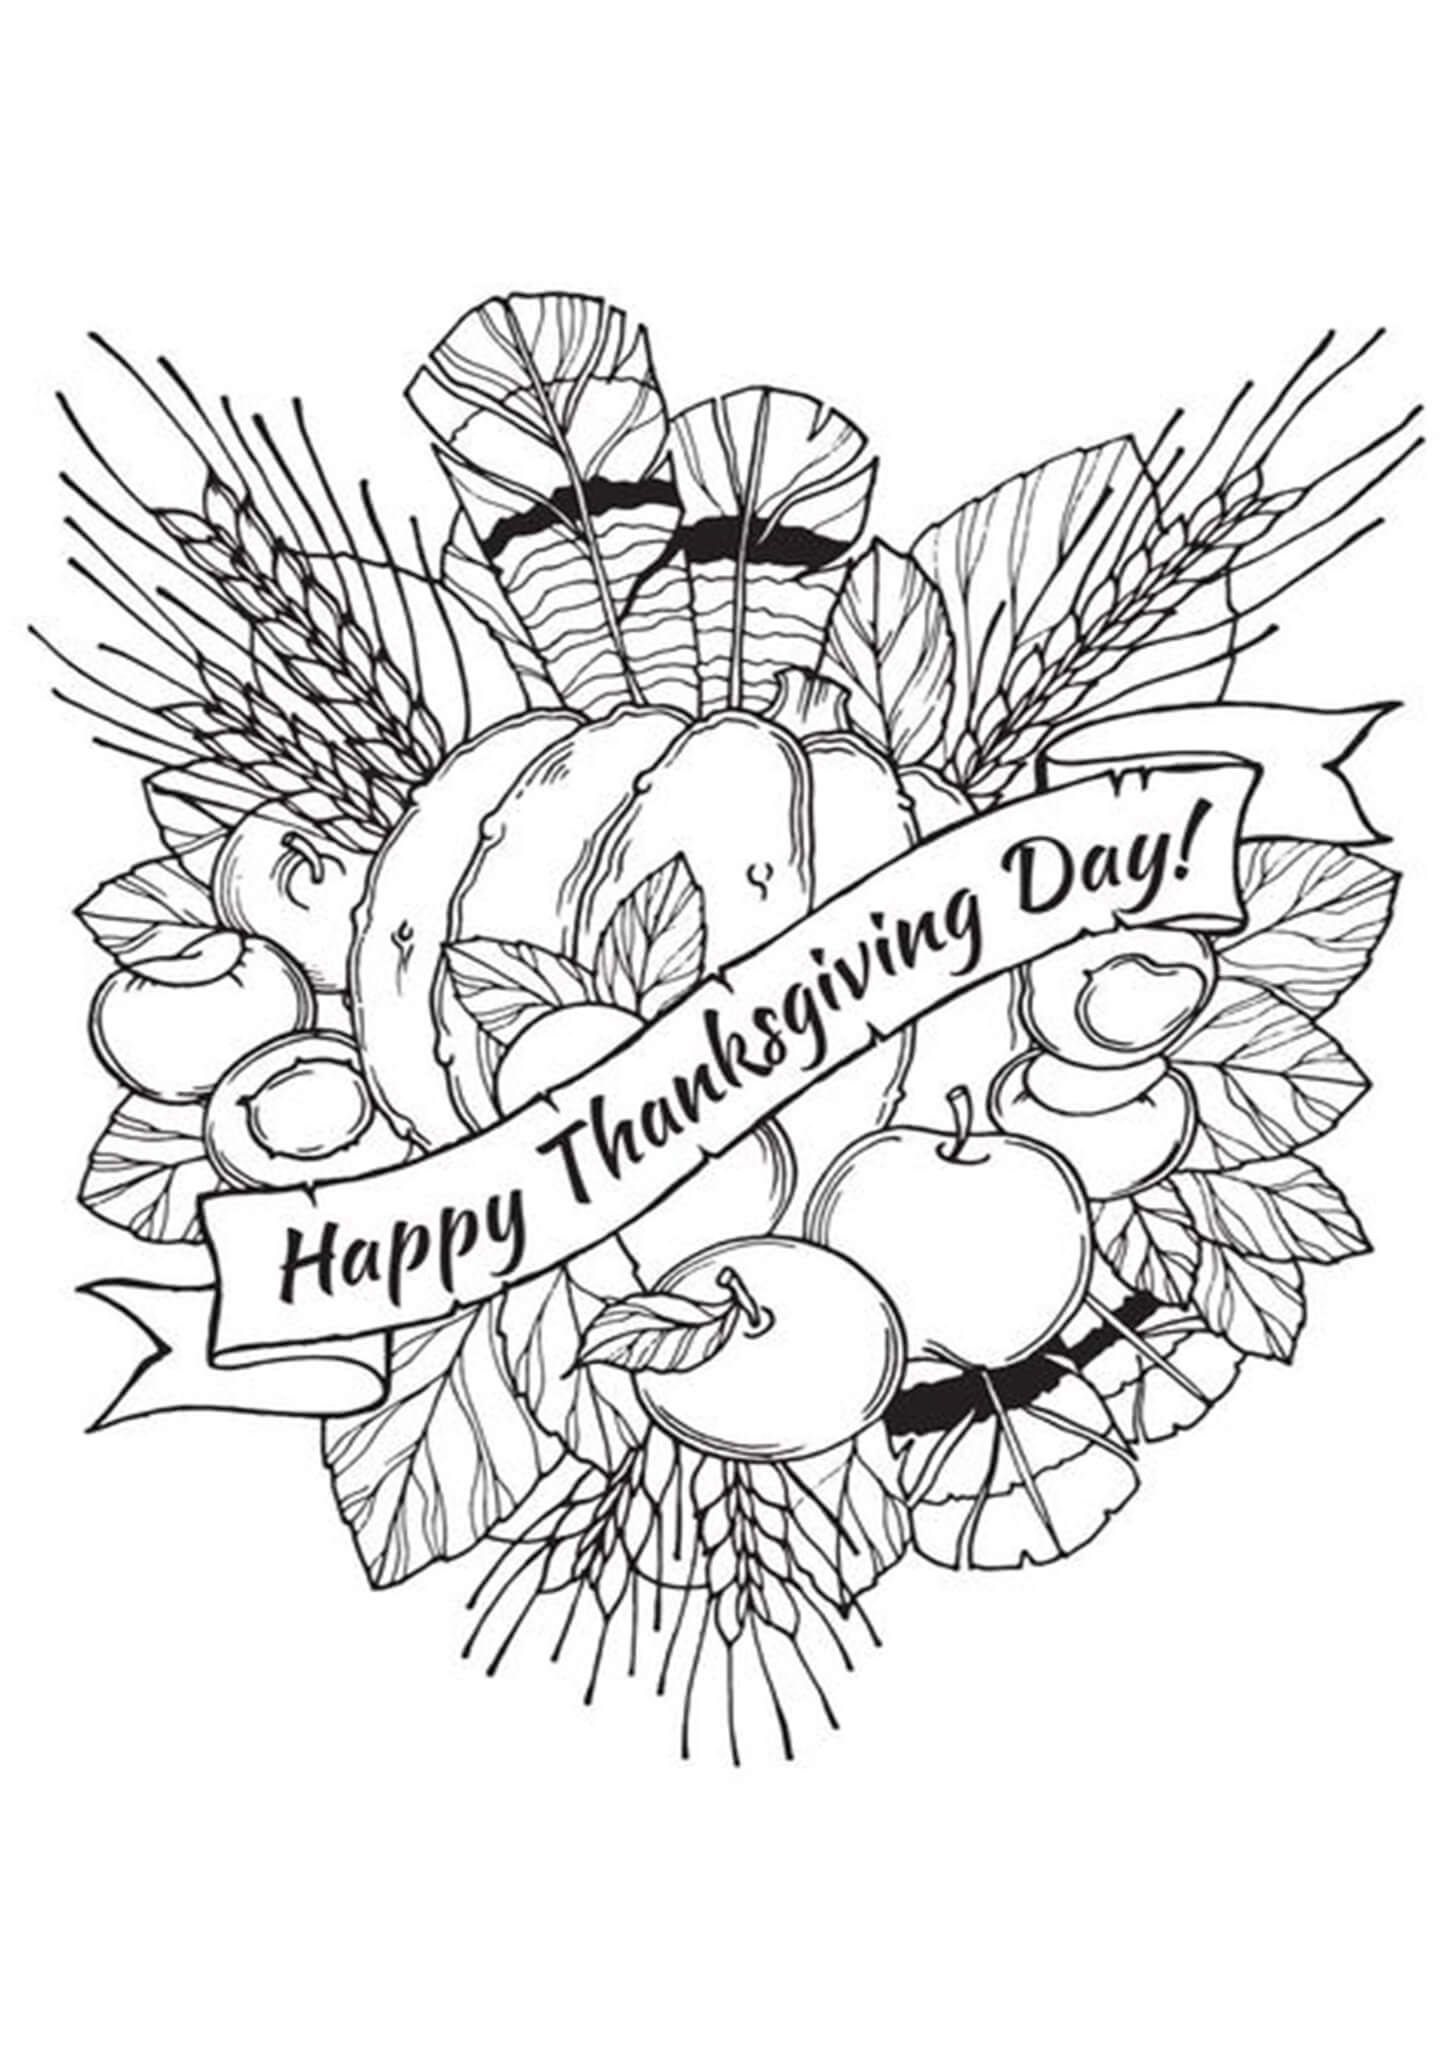 Free Printable Thanksgiving Coloring Pages Thanksgiving Coloring Pages Coloring Pages Free Thanksgiving Coloring Pages [ 2048 x 1448 Pixel ]